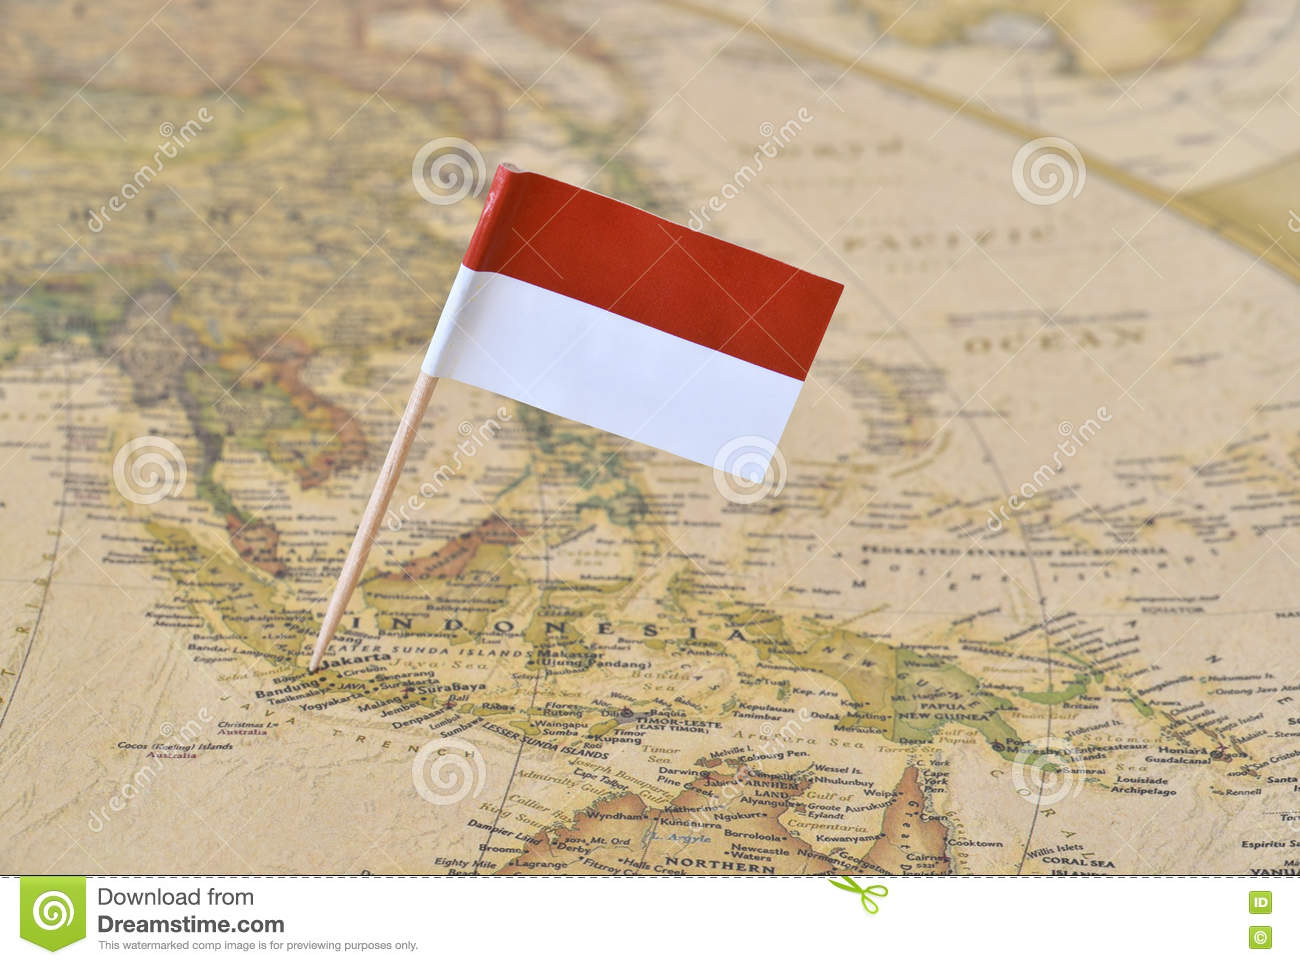 Indonesia flag pin on map